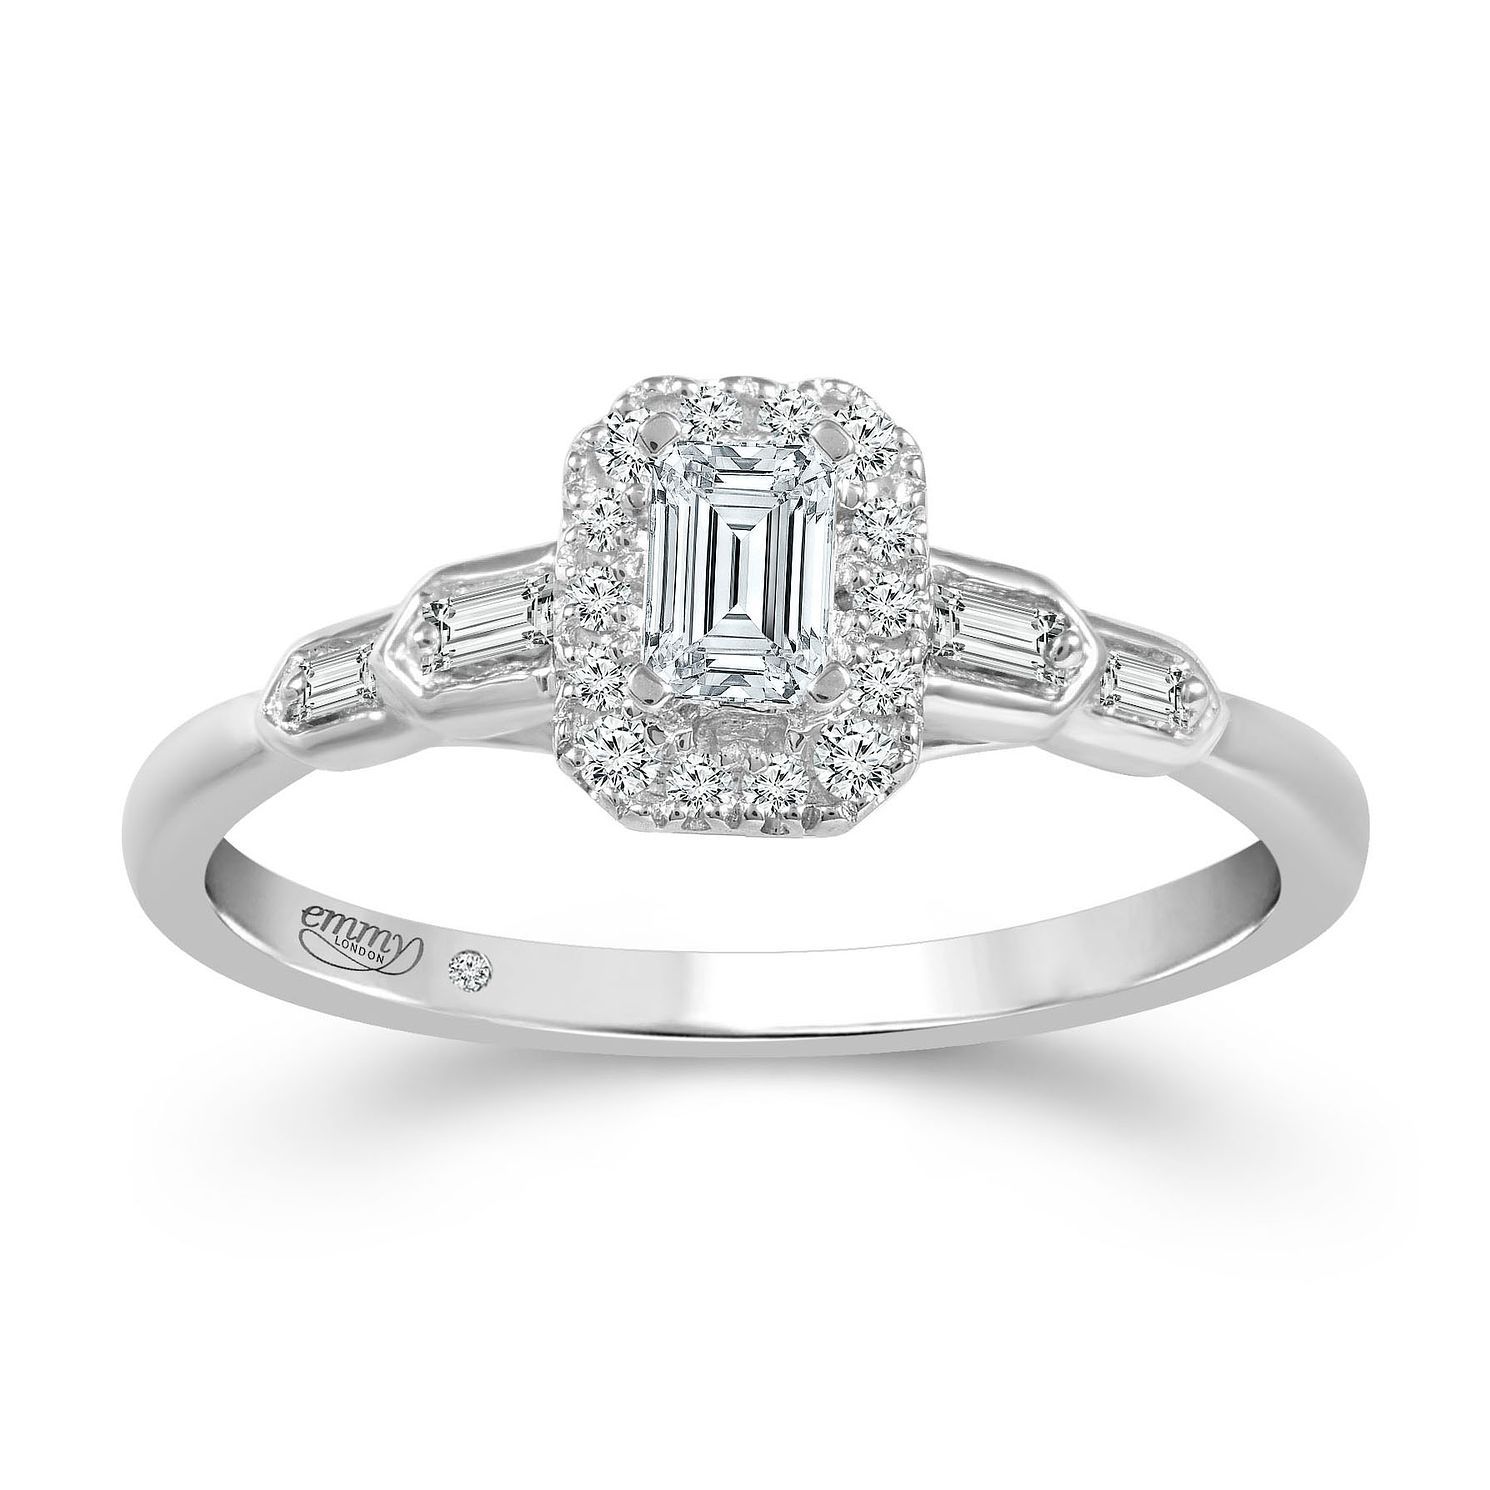 Emmy London Platinum 2/5ct Diamond Baguette Ring - Product number 2887576